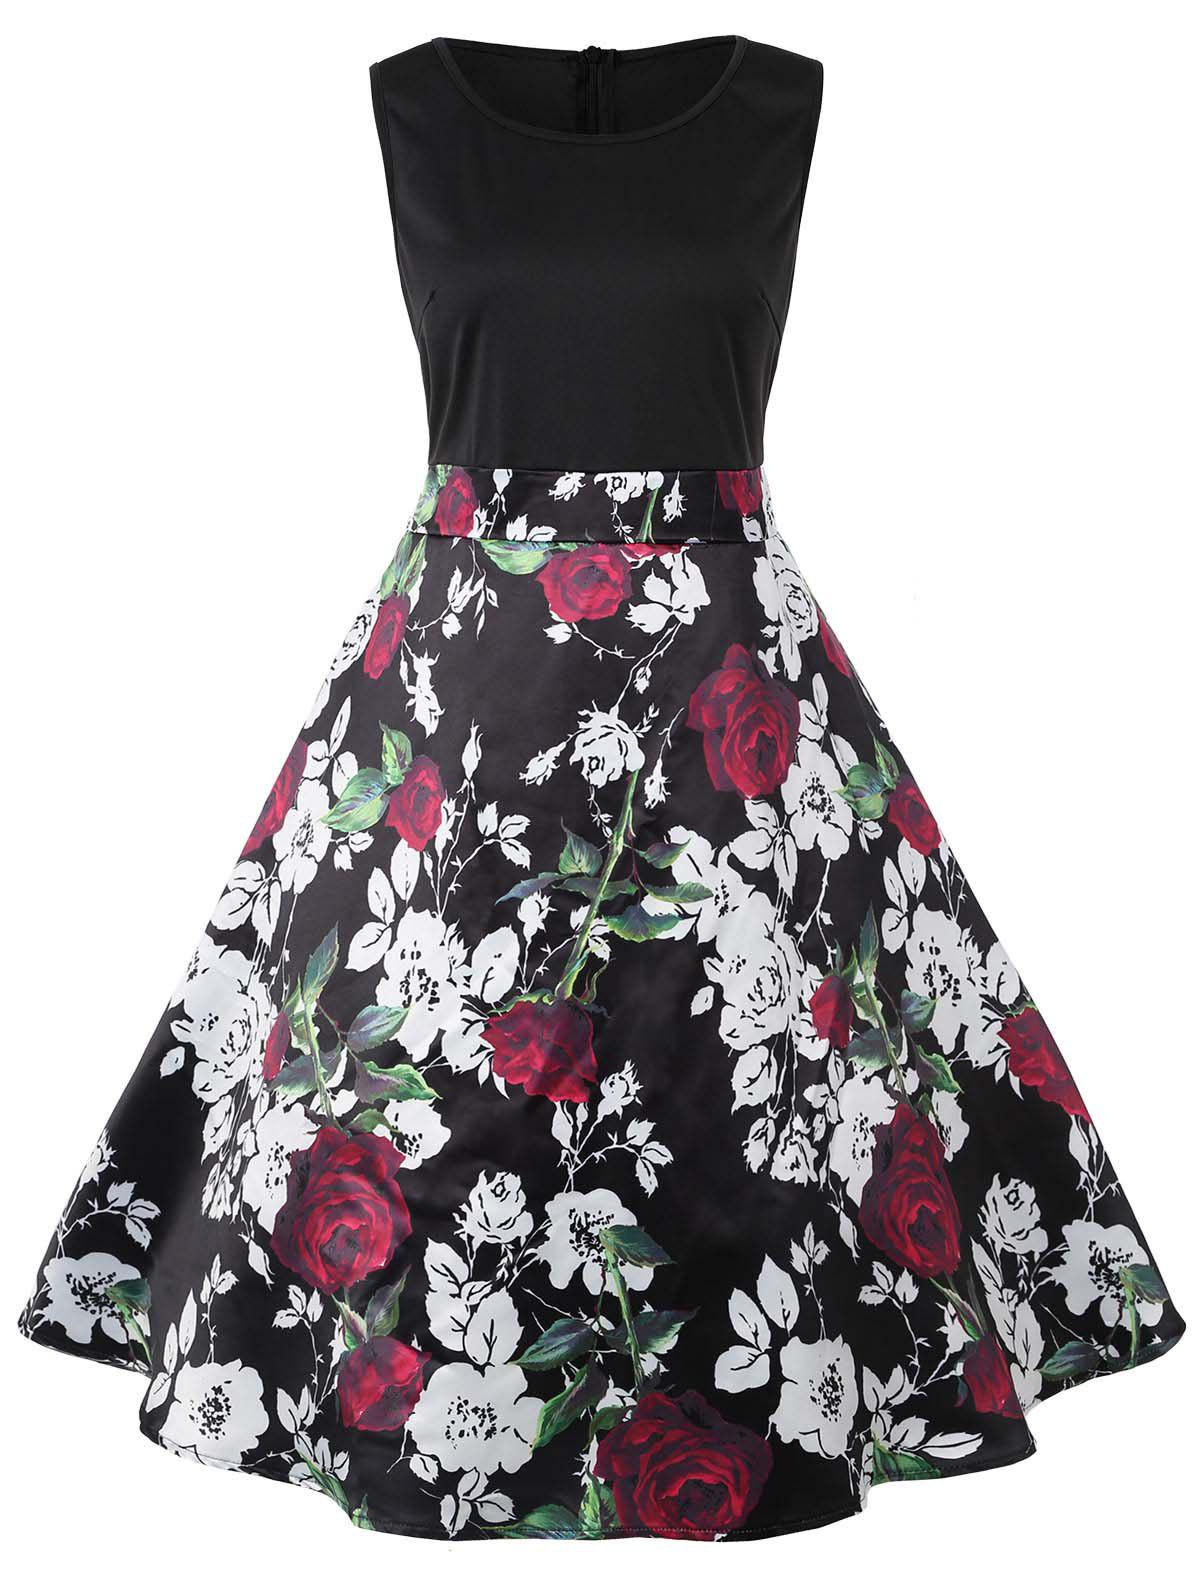 Valentines Day Roses Printed Sleeveless Flare Dress